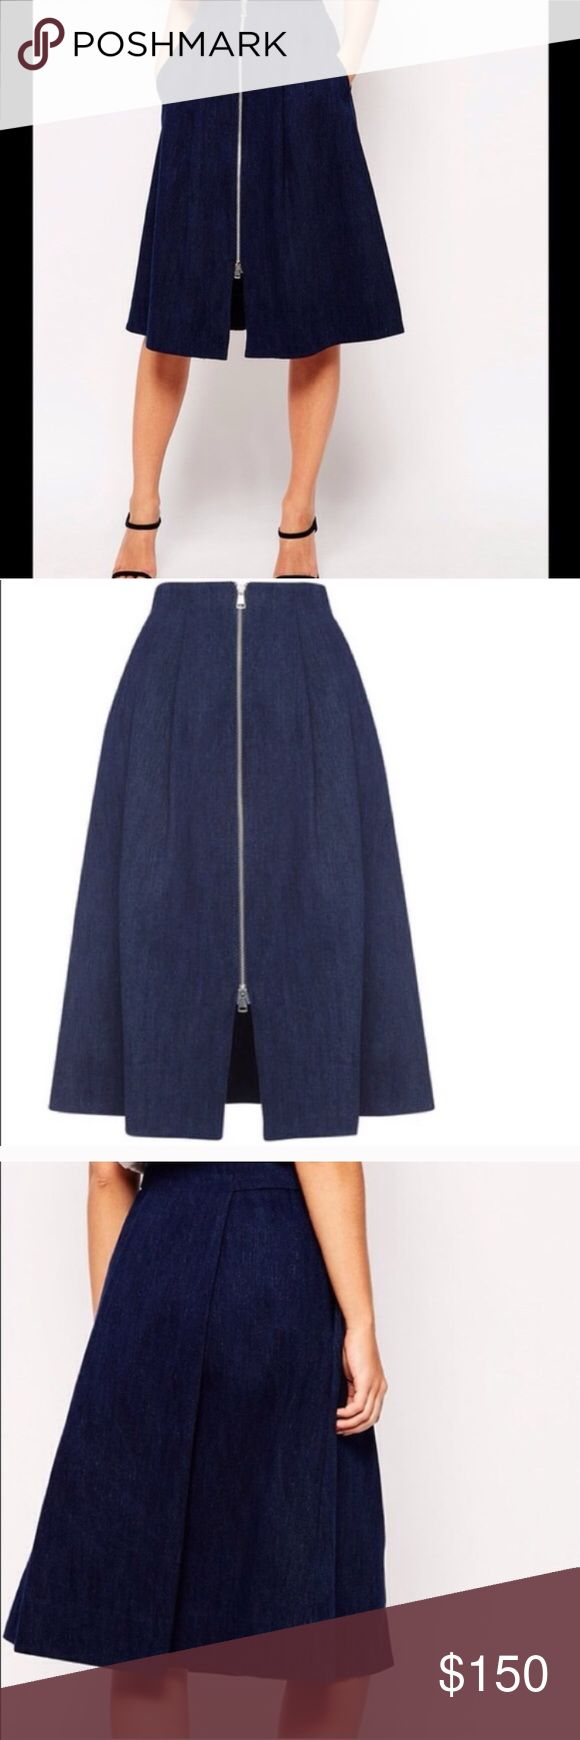 NWT WHISTLES Midi Denim Skirt From British retailer WHISTLES comes this brand new skirt. 100% denim, a-line skirt with a fitted waist & flattering pleats. Deep front pockets on the hip. NWT. Waist 26 x length 28. UK10/US6 Whistles Skirts